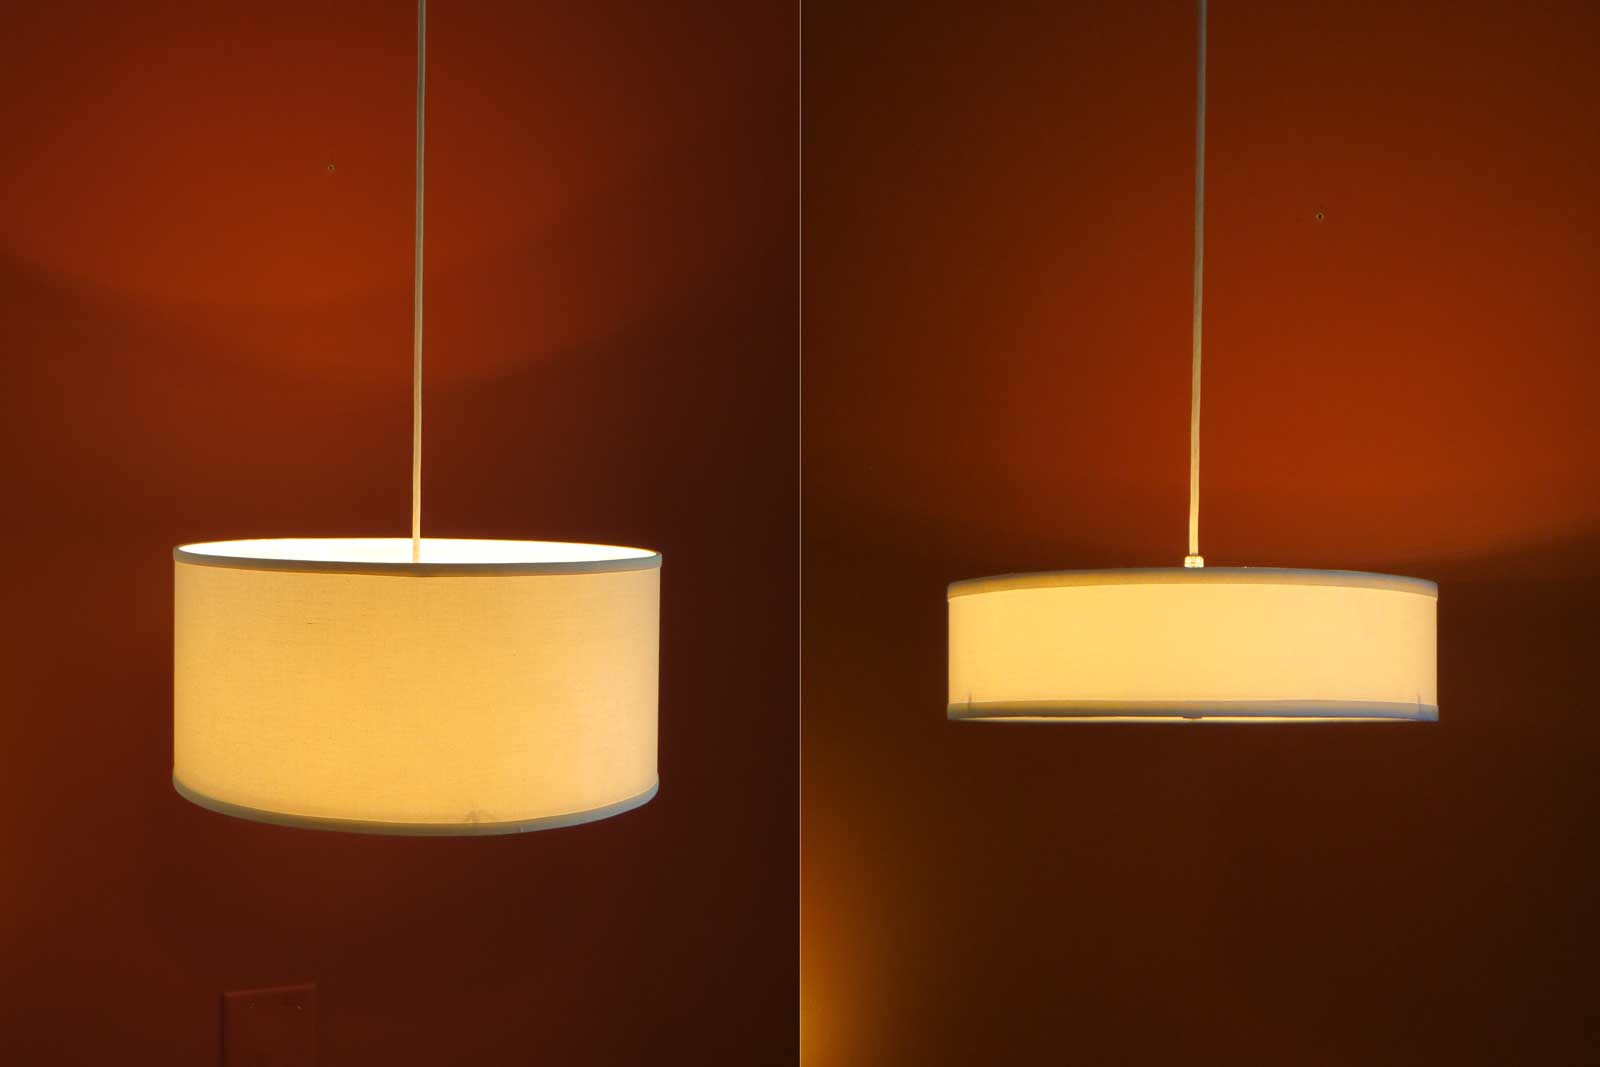 stlighting-pendant-side-by-side